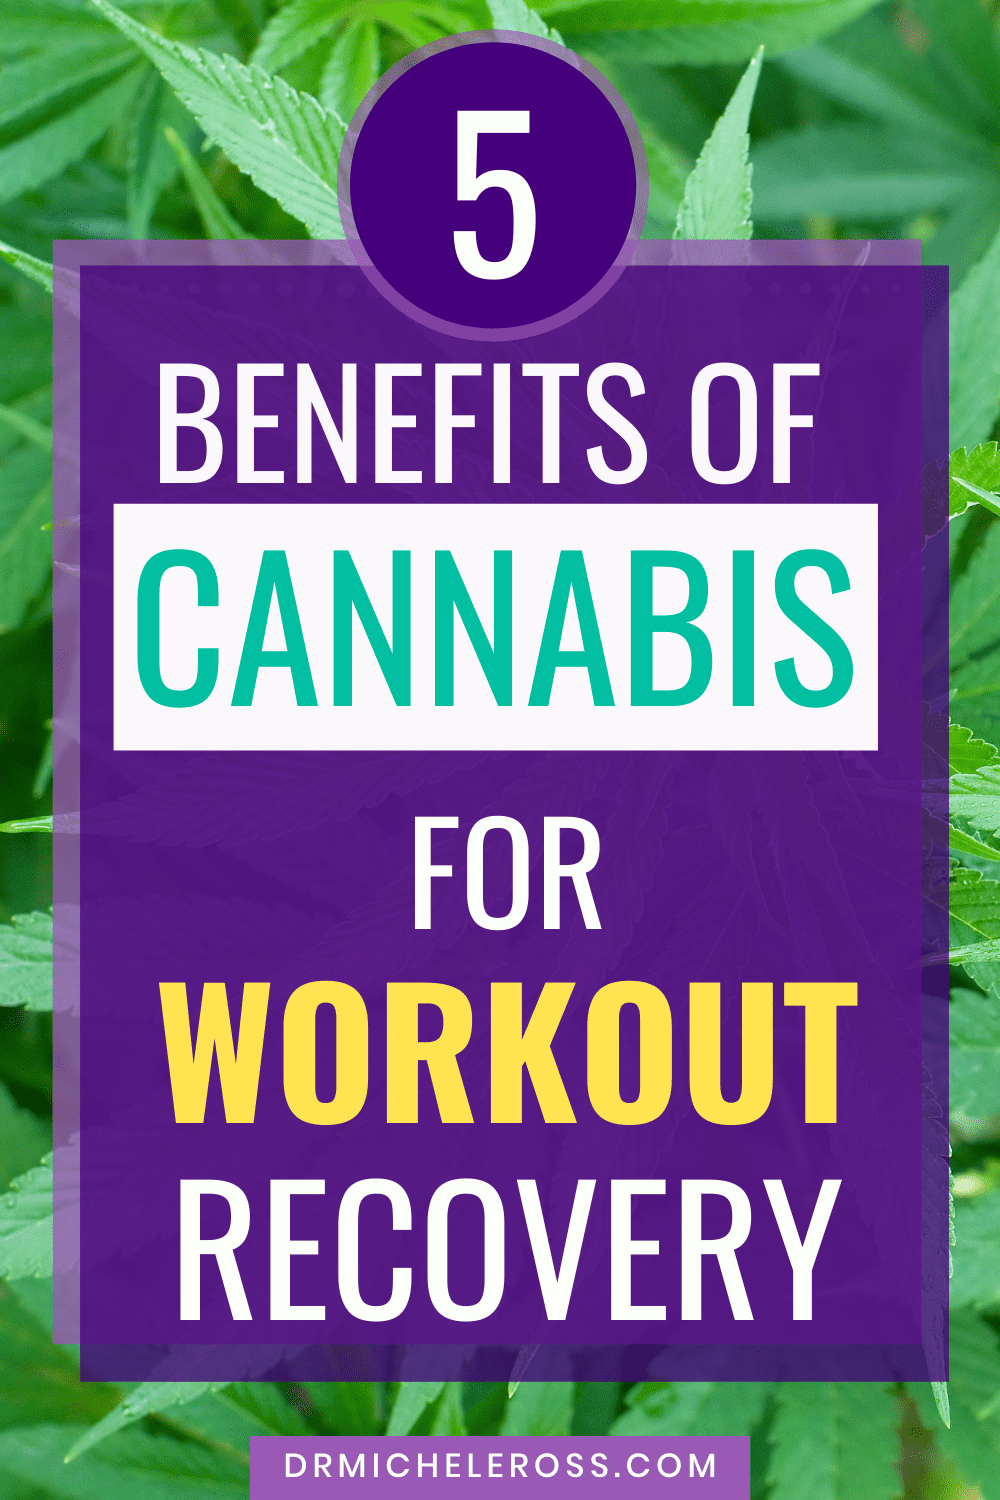 5 Benefits of Cannabis For Workout Recovery